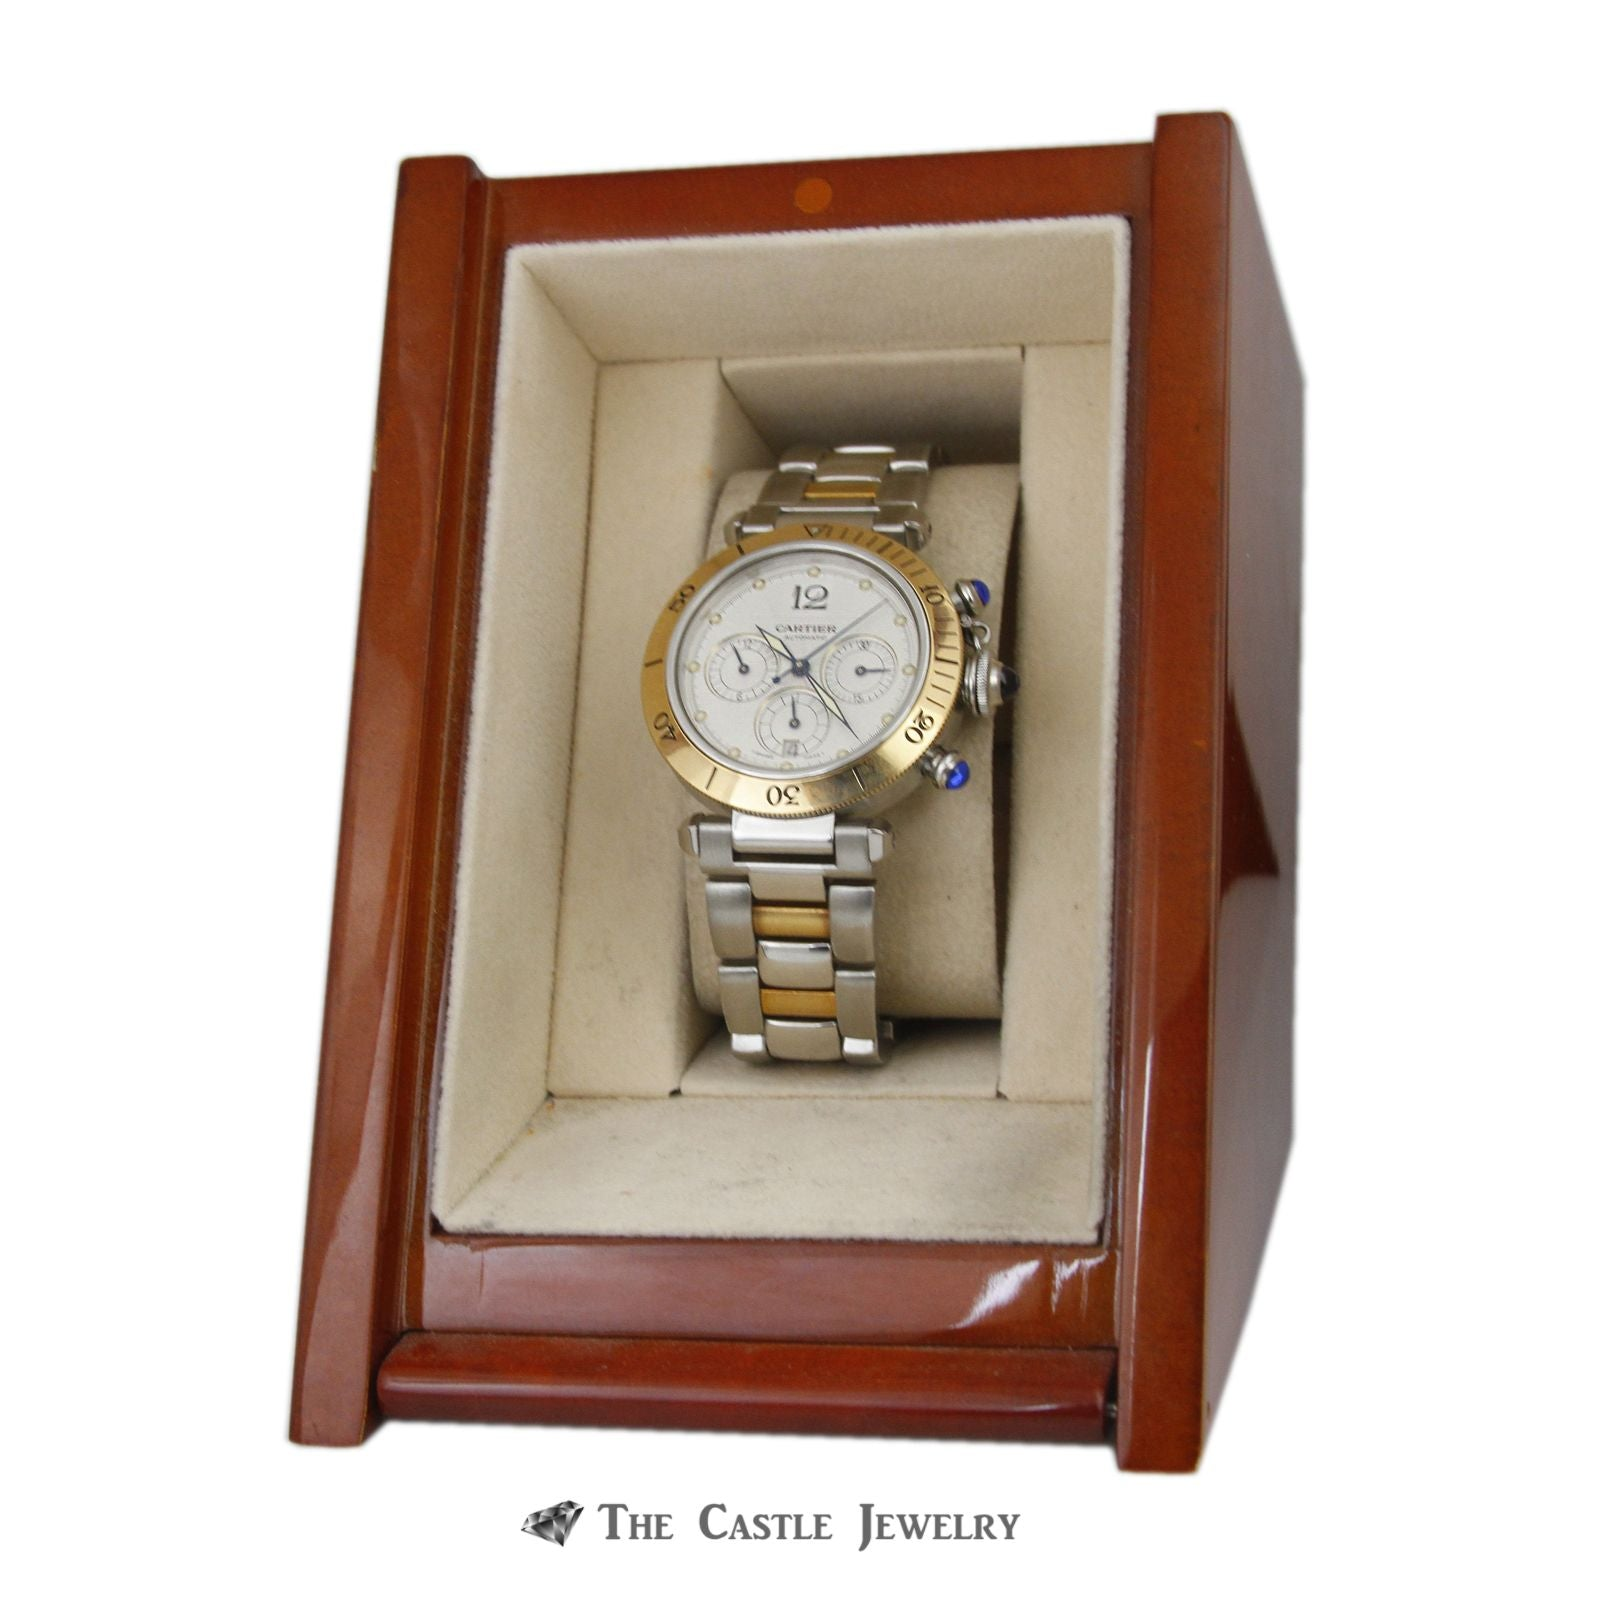 Cartier Pasha de Cartier Watch 18K & Steel 38mm Chronograph Ref. 2113-7